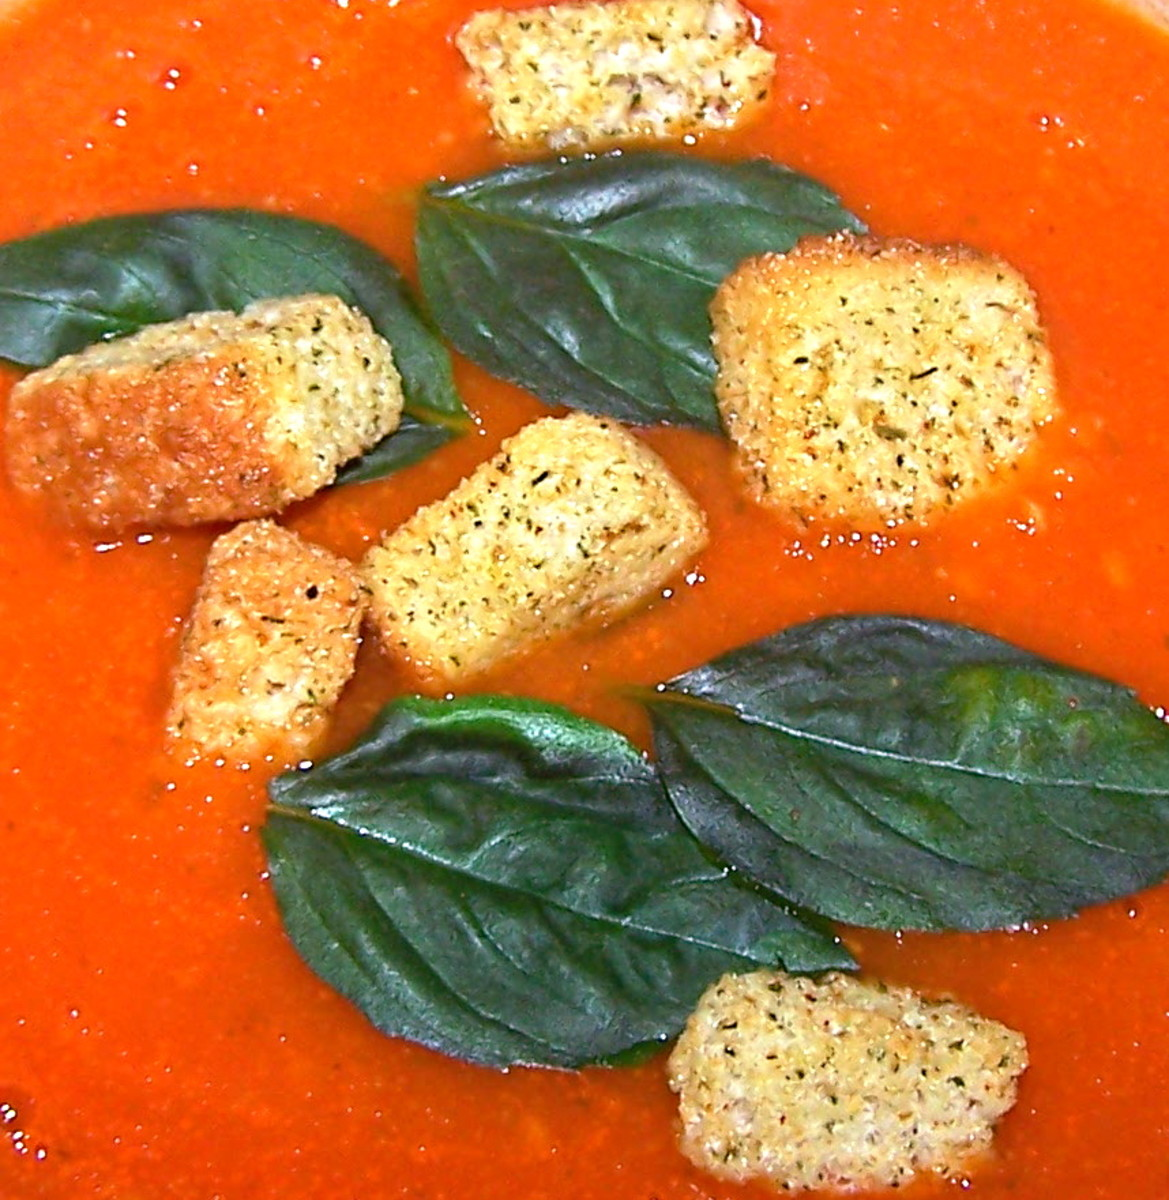 Add crispy croutons and fresh basil leaves